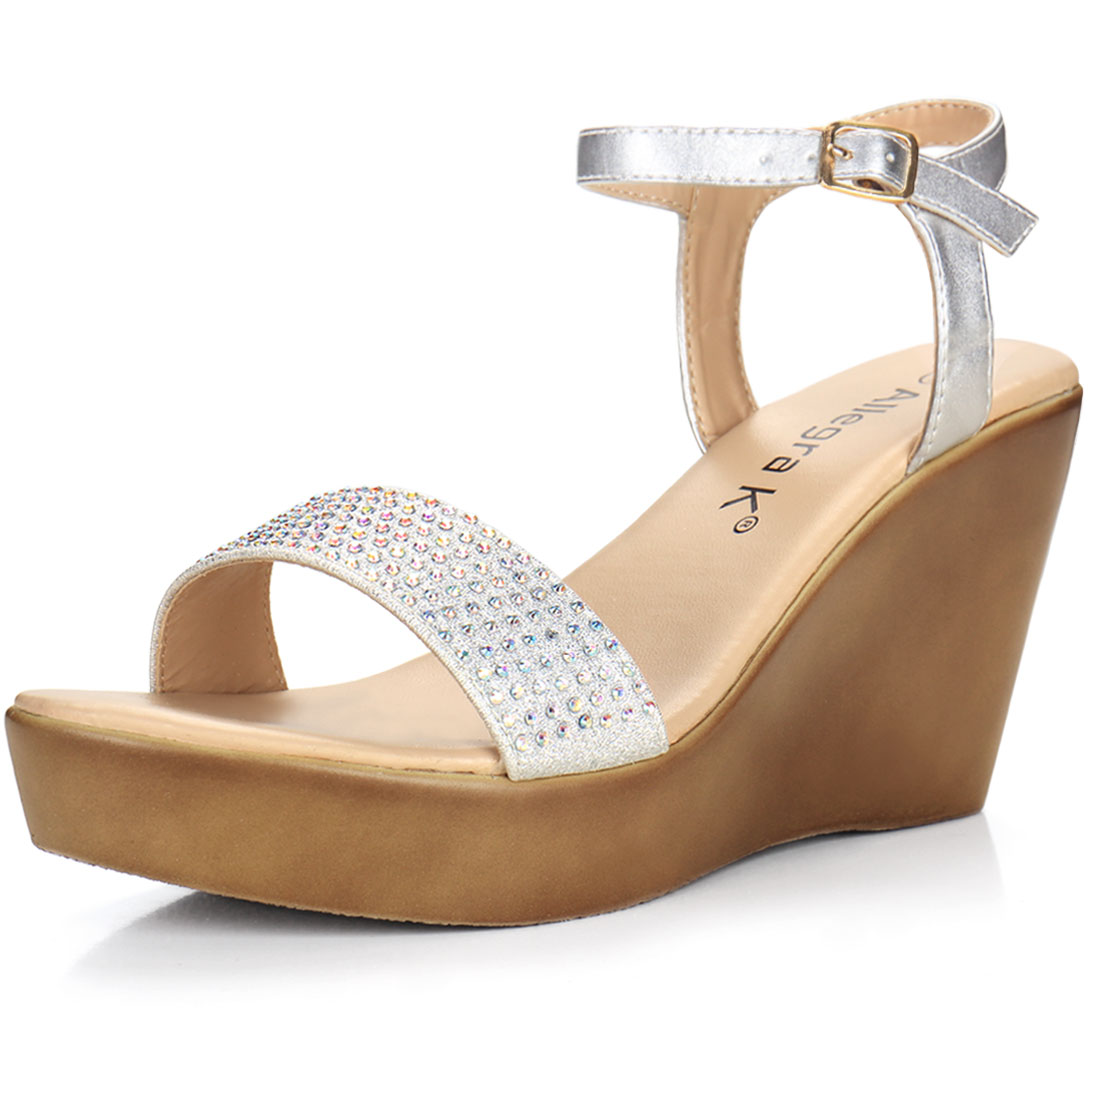 Woman Rhinestones Embellished Open Toe Wedge Sandals Silver US 11